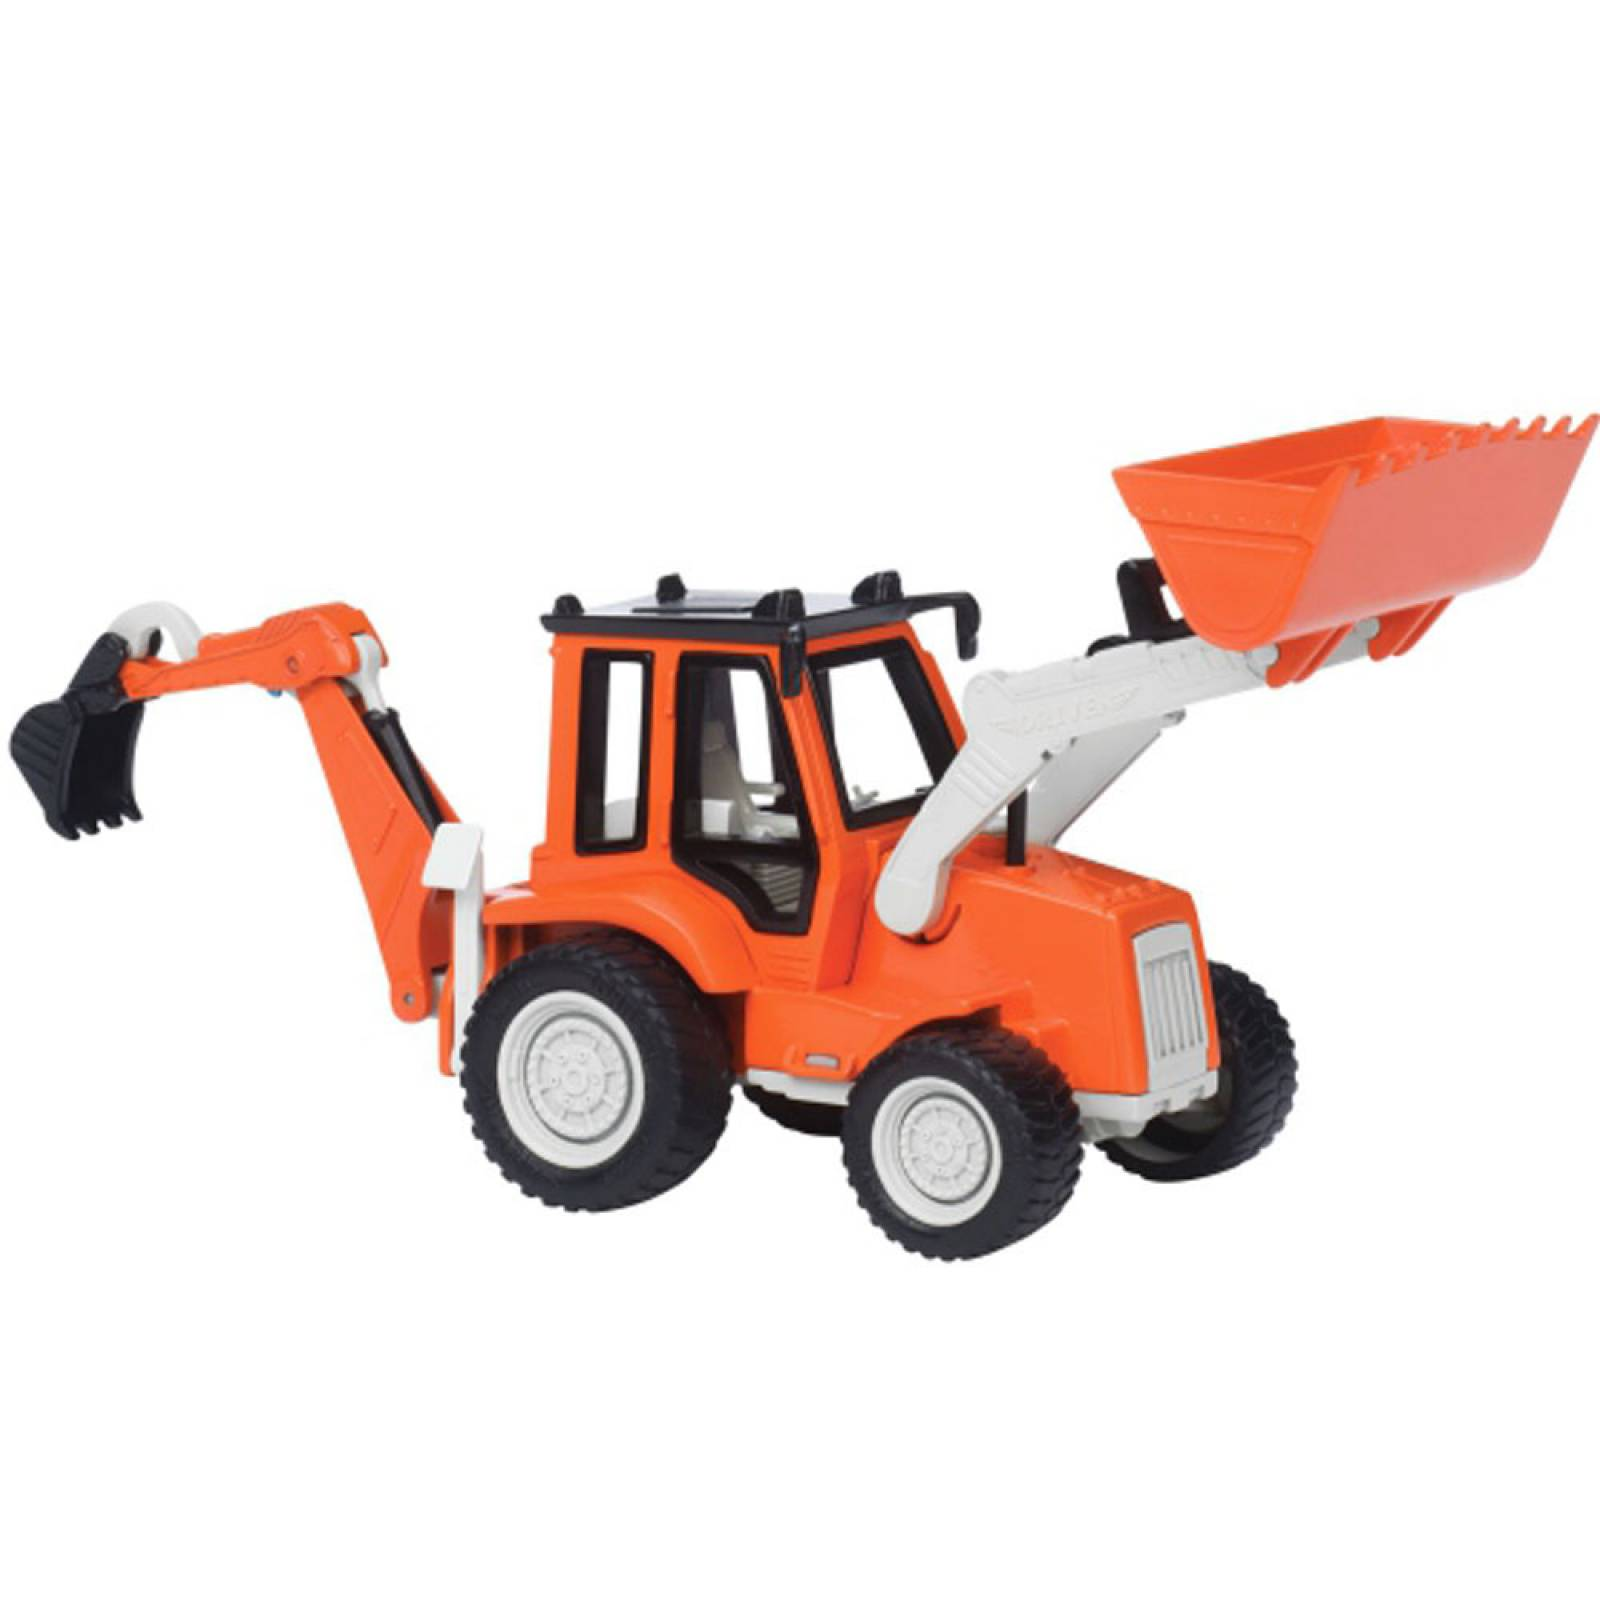 Backhoe Digger Mini Driven By Battat 4Yrs+ thumbnails